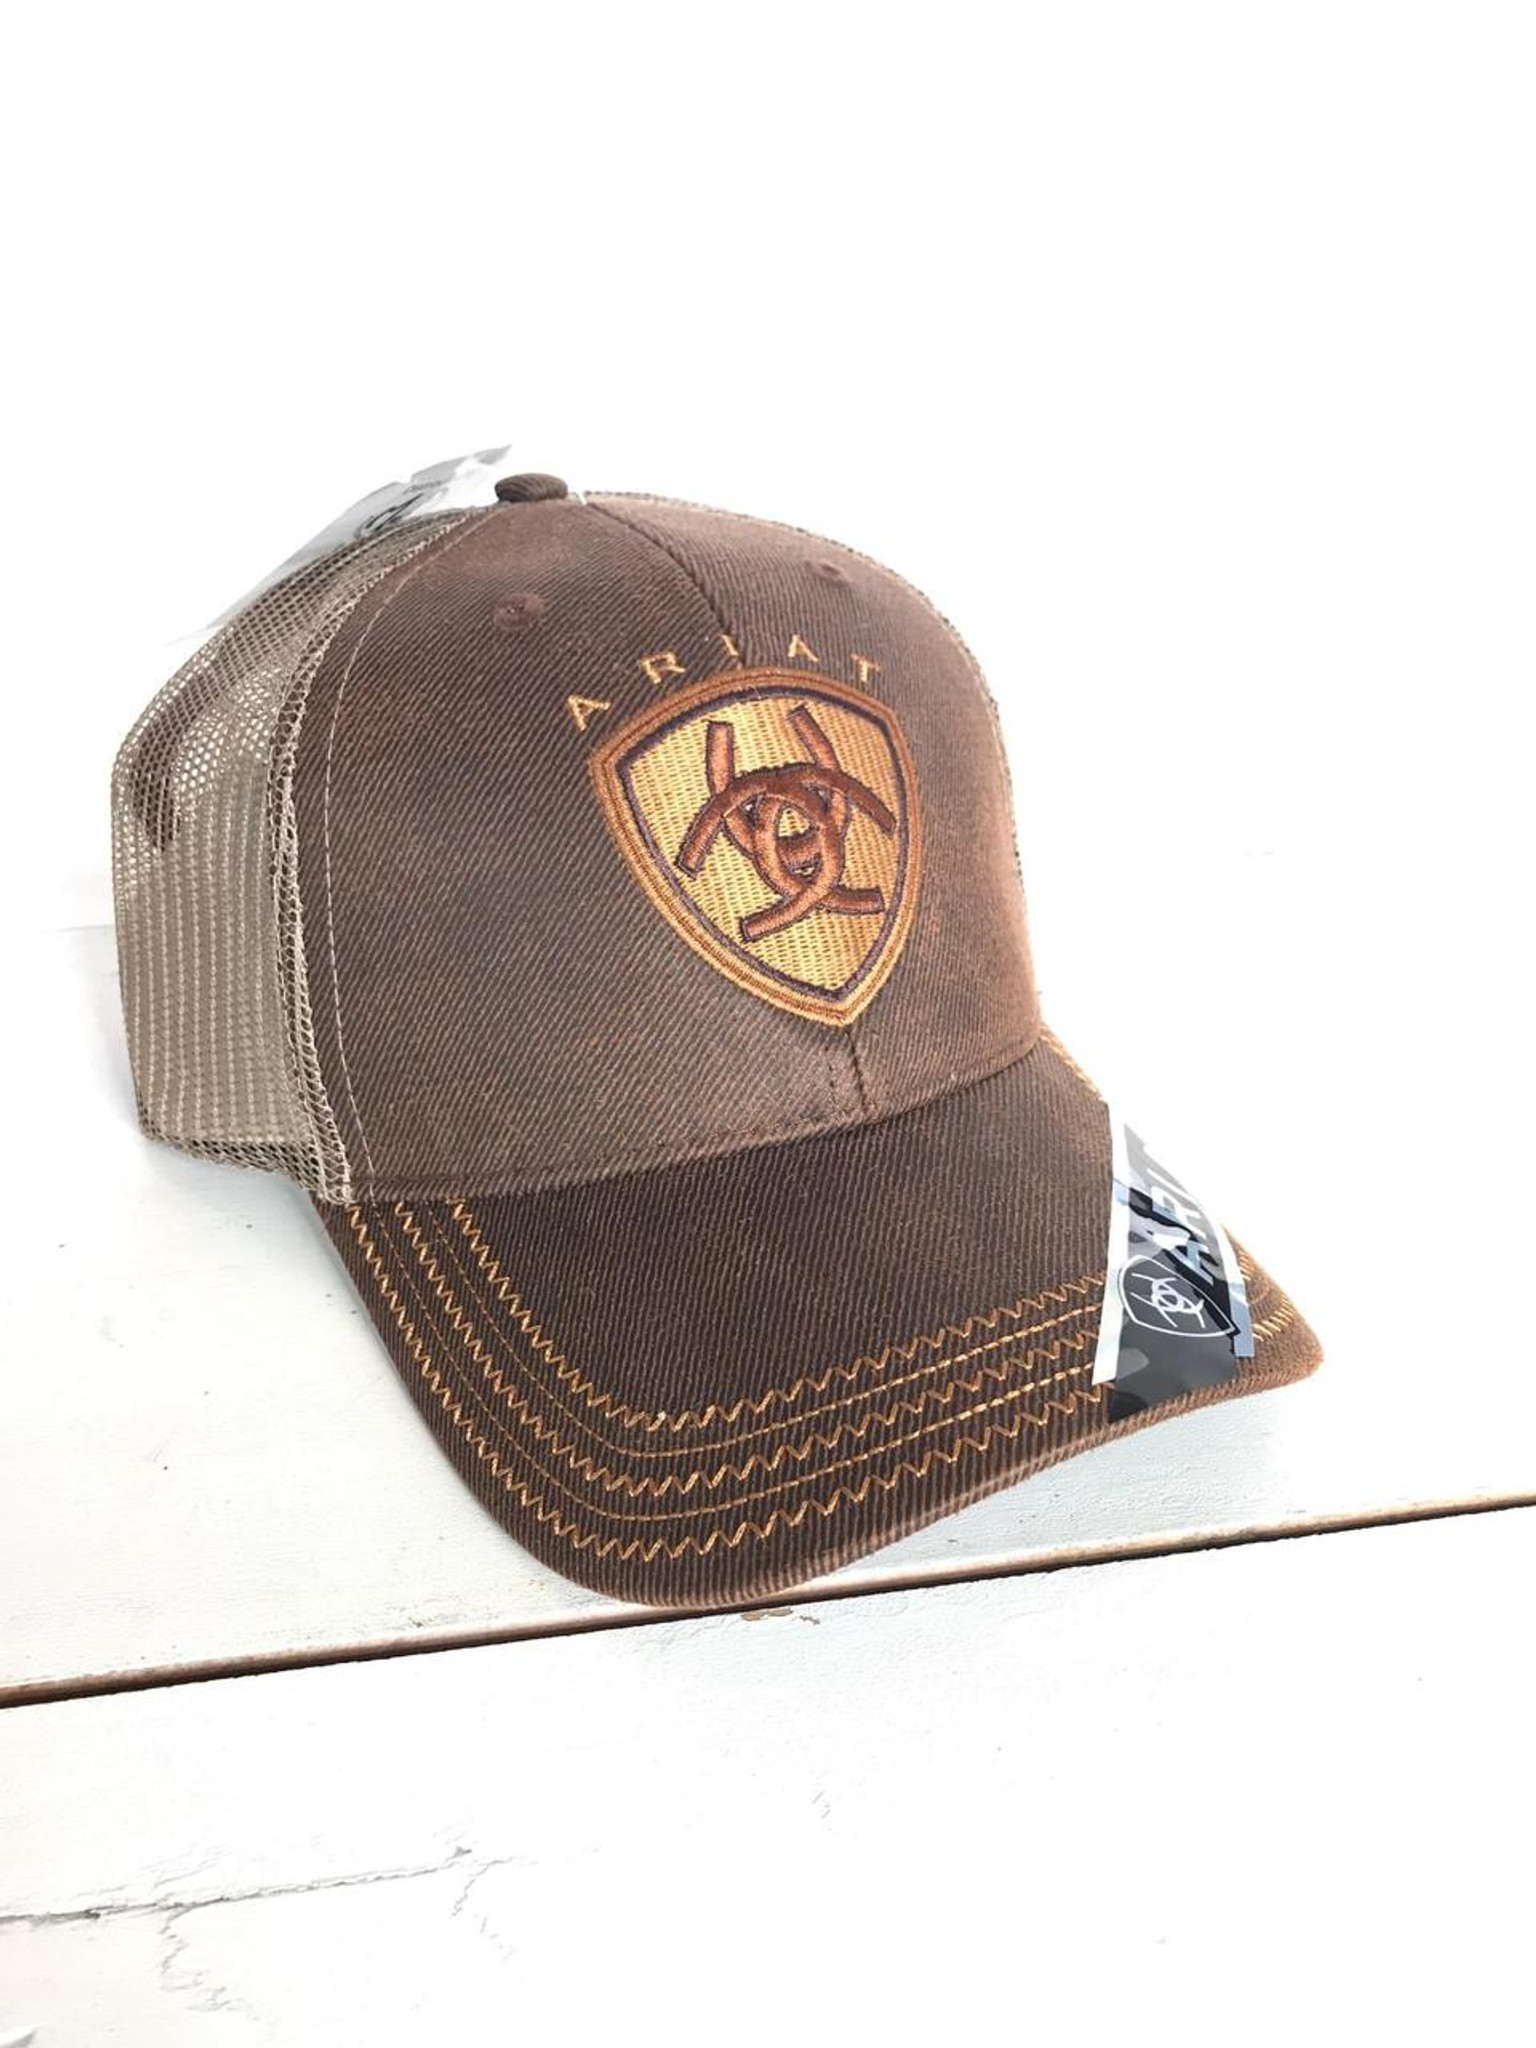 c81cd05a1 Ariat Velcro Mesh Hat Brown Oilskin